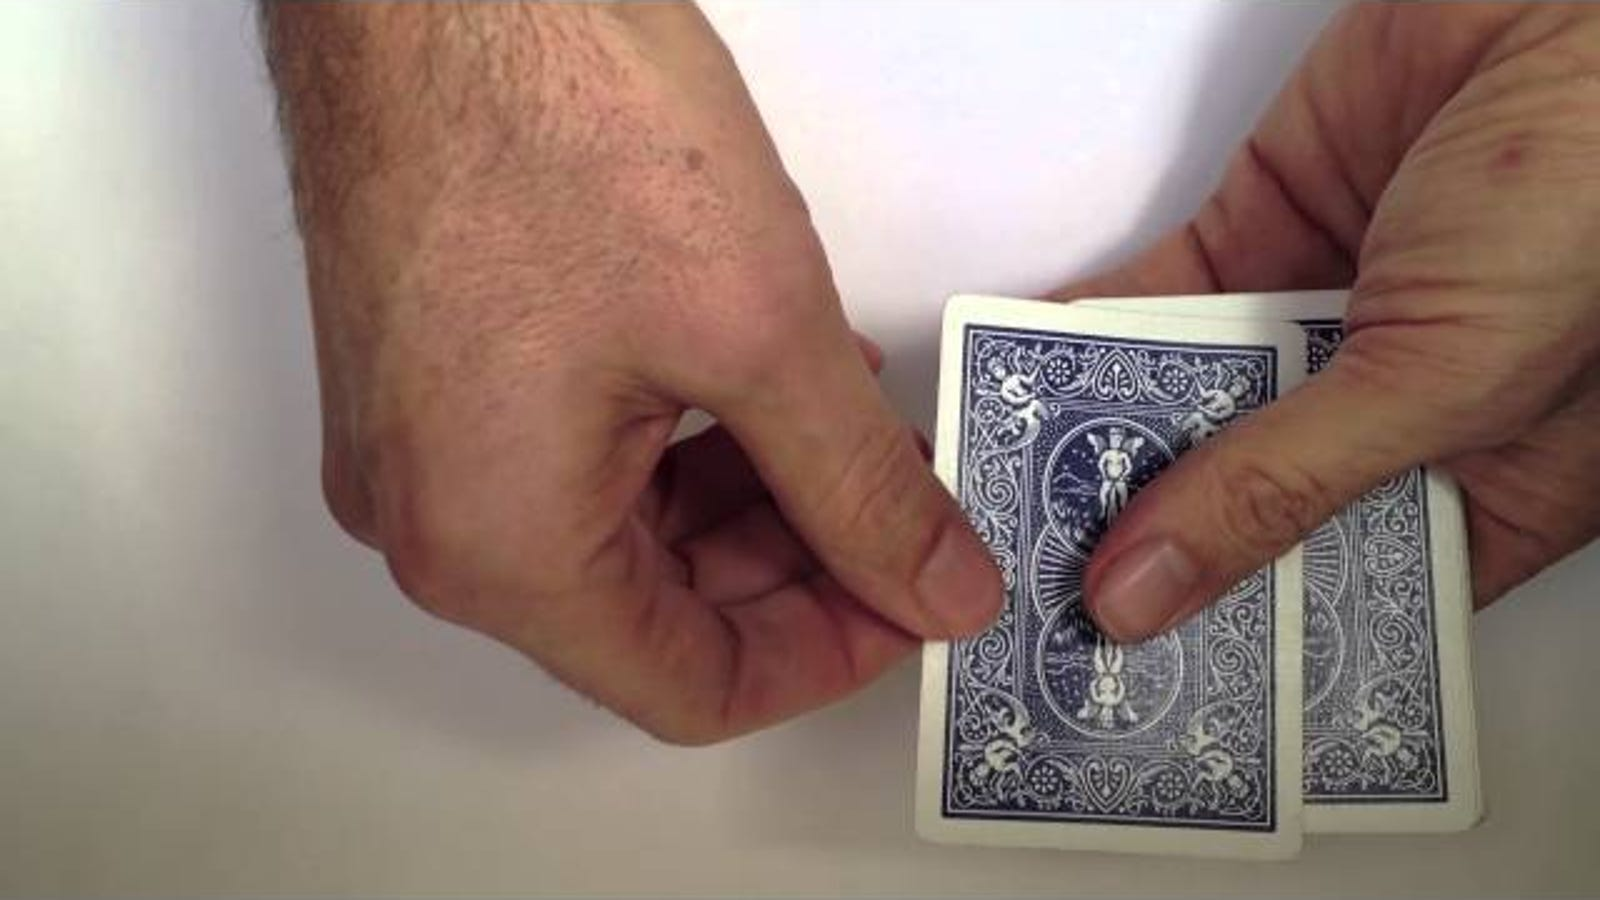 Here's a Simple Card Trick You Can Learn in a Minute